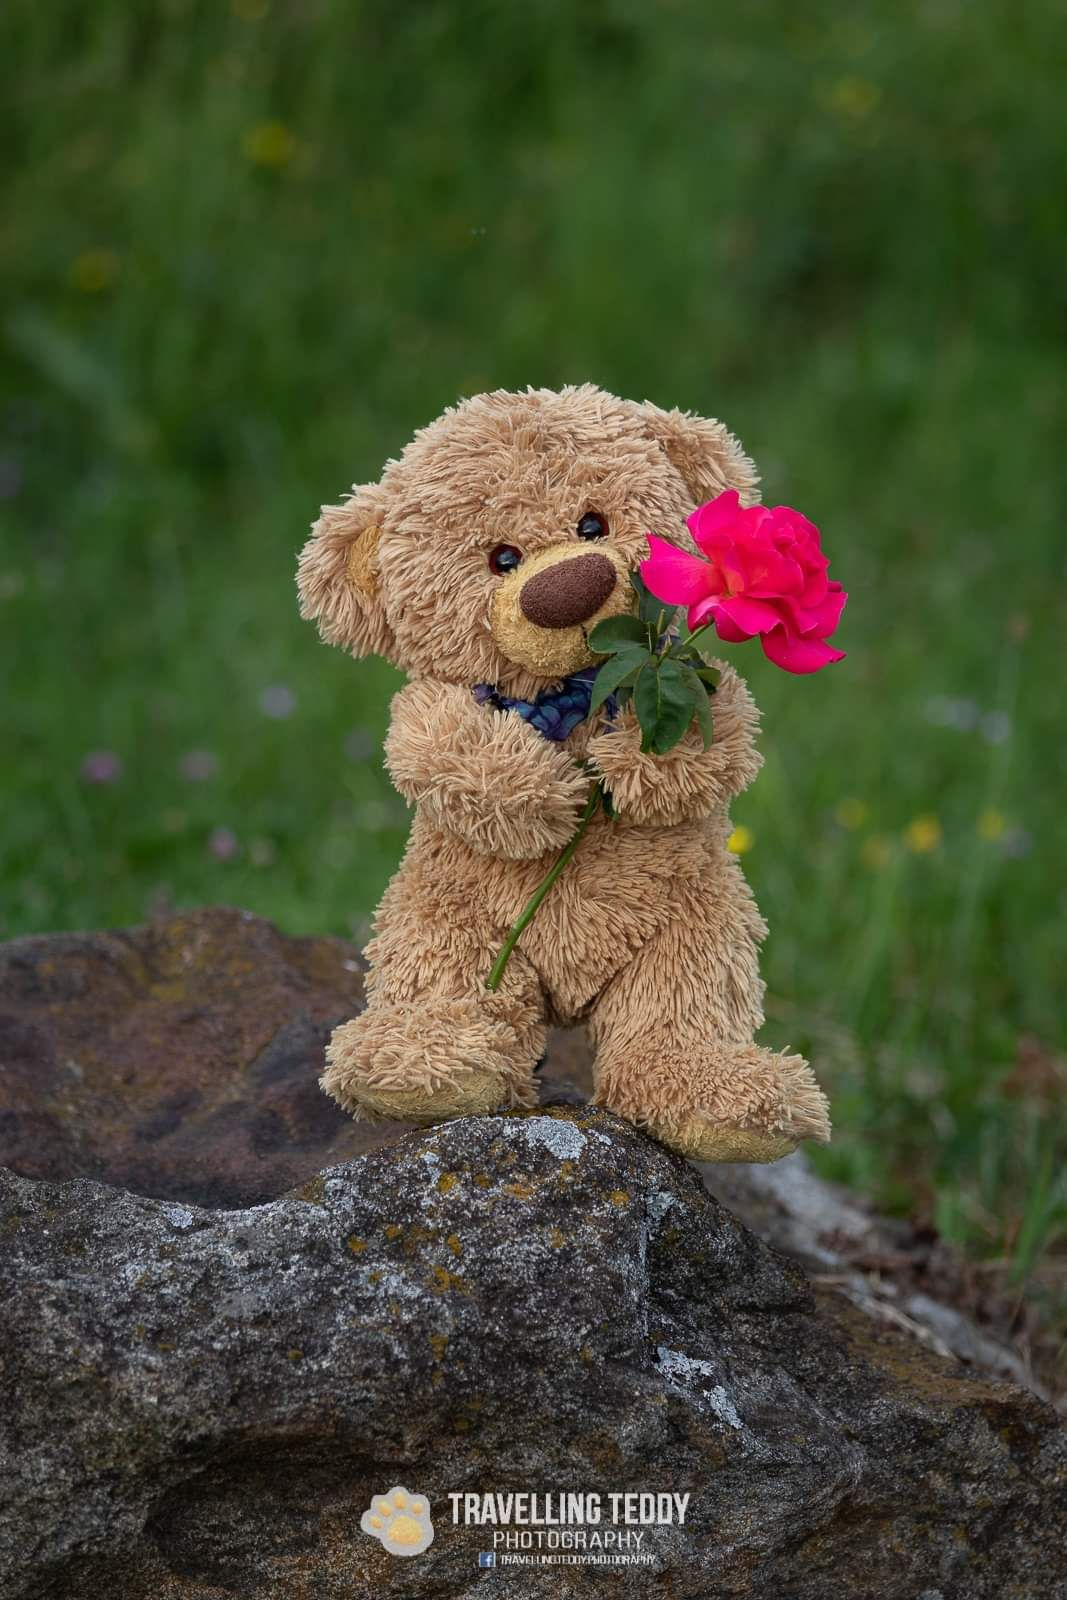 Pin On Teddy Bear Cute teddy bear wallpapers for android